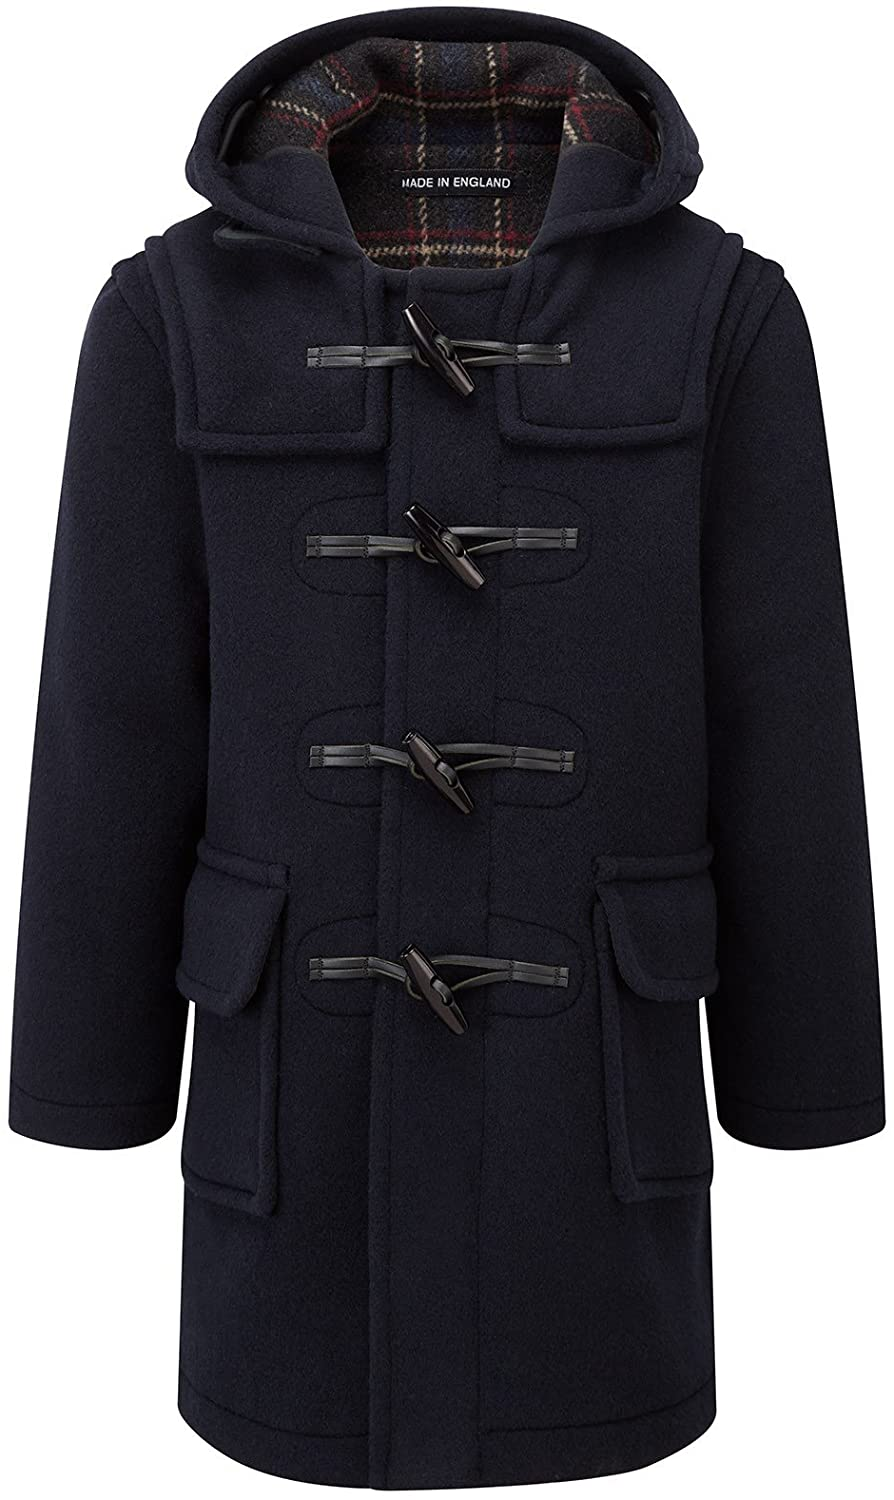 Kids Classic Duffle Coat (Toggle Coat) in Navy